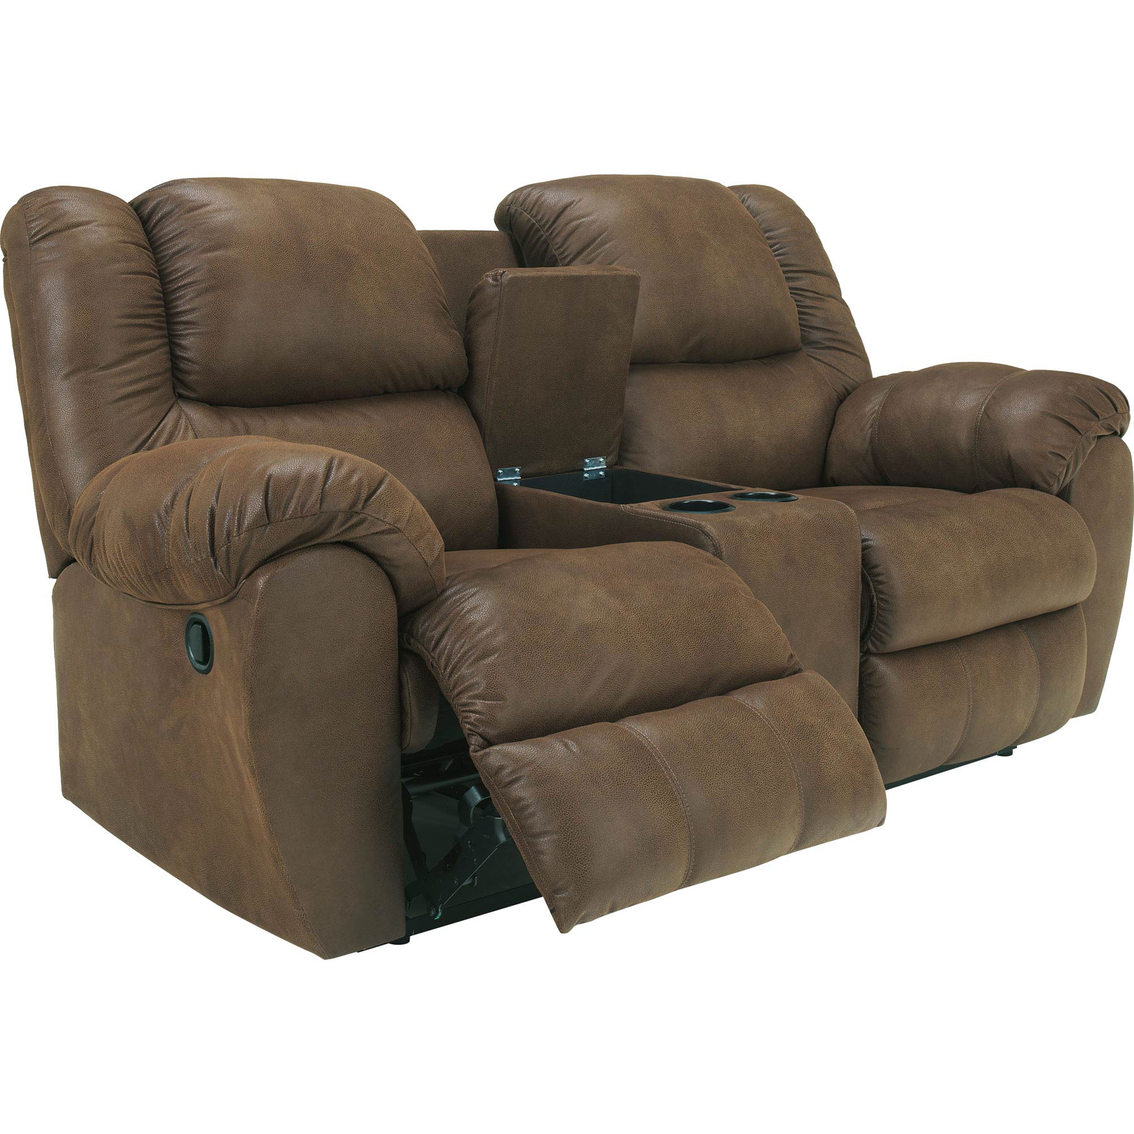 ashley furniture reclining sofa and loveseat hereo sofa